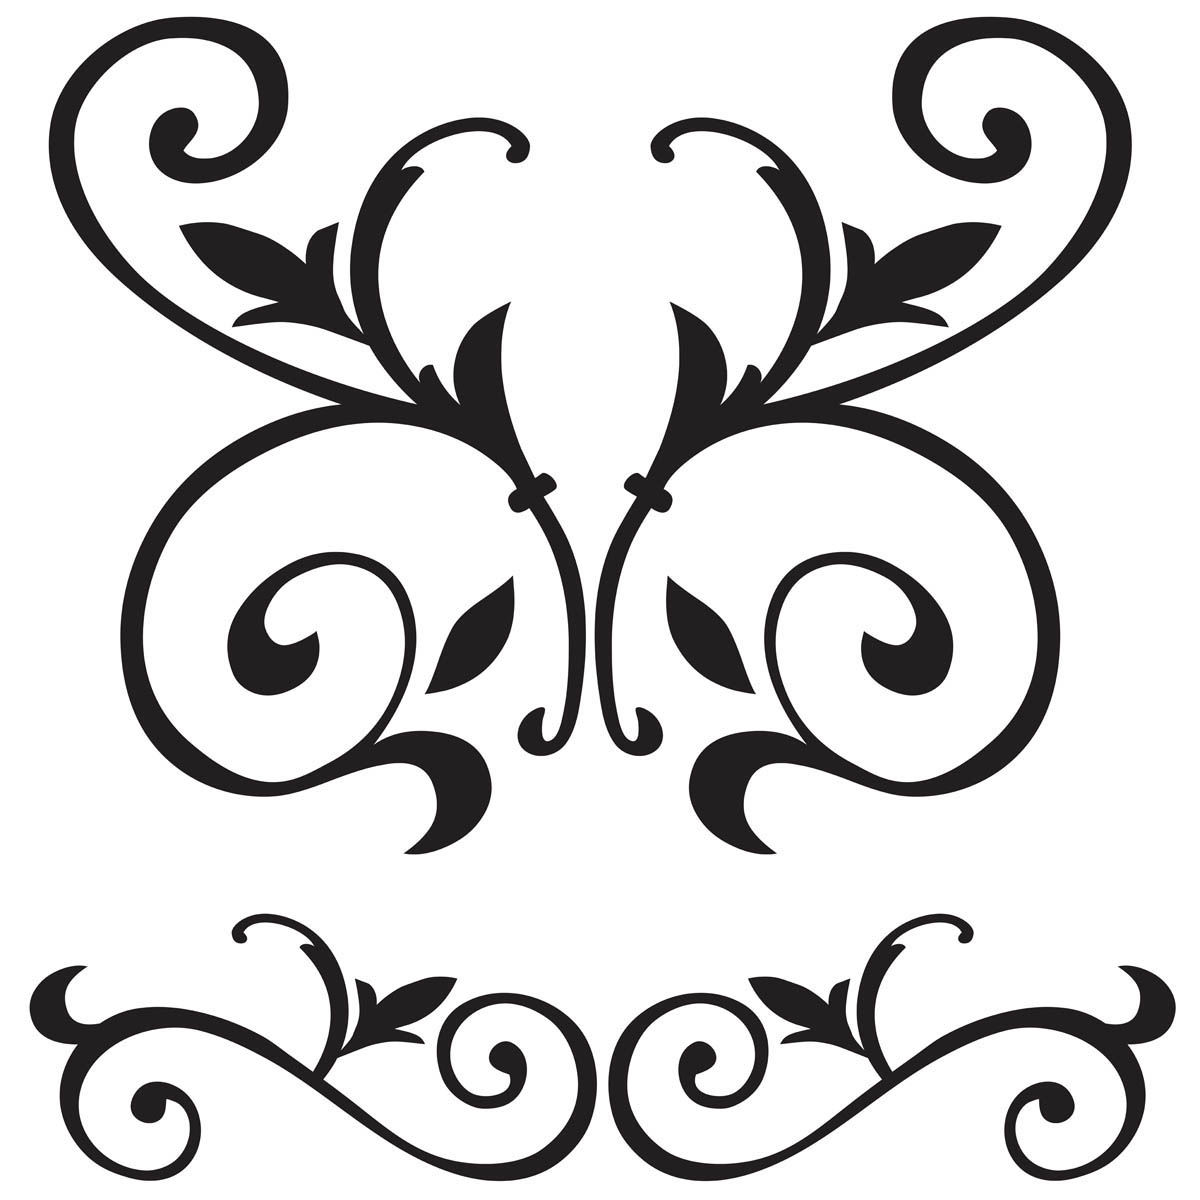 FolkArt ® Painting Stencils - Large - Scroll - 30594